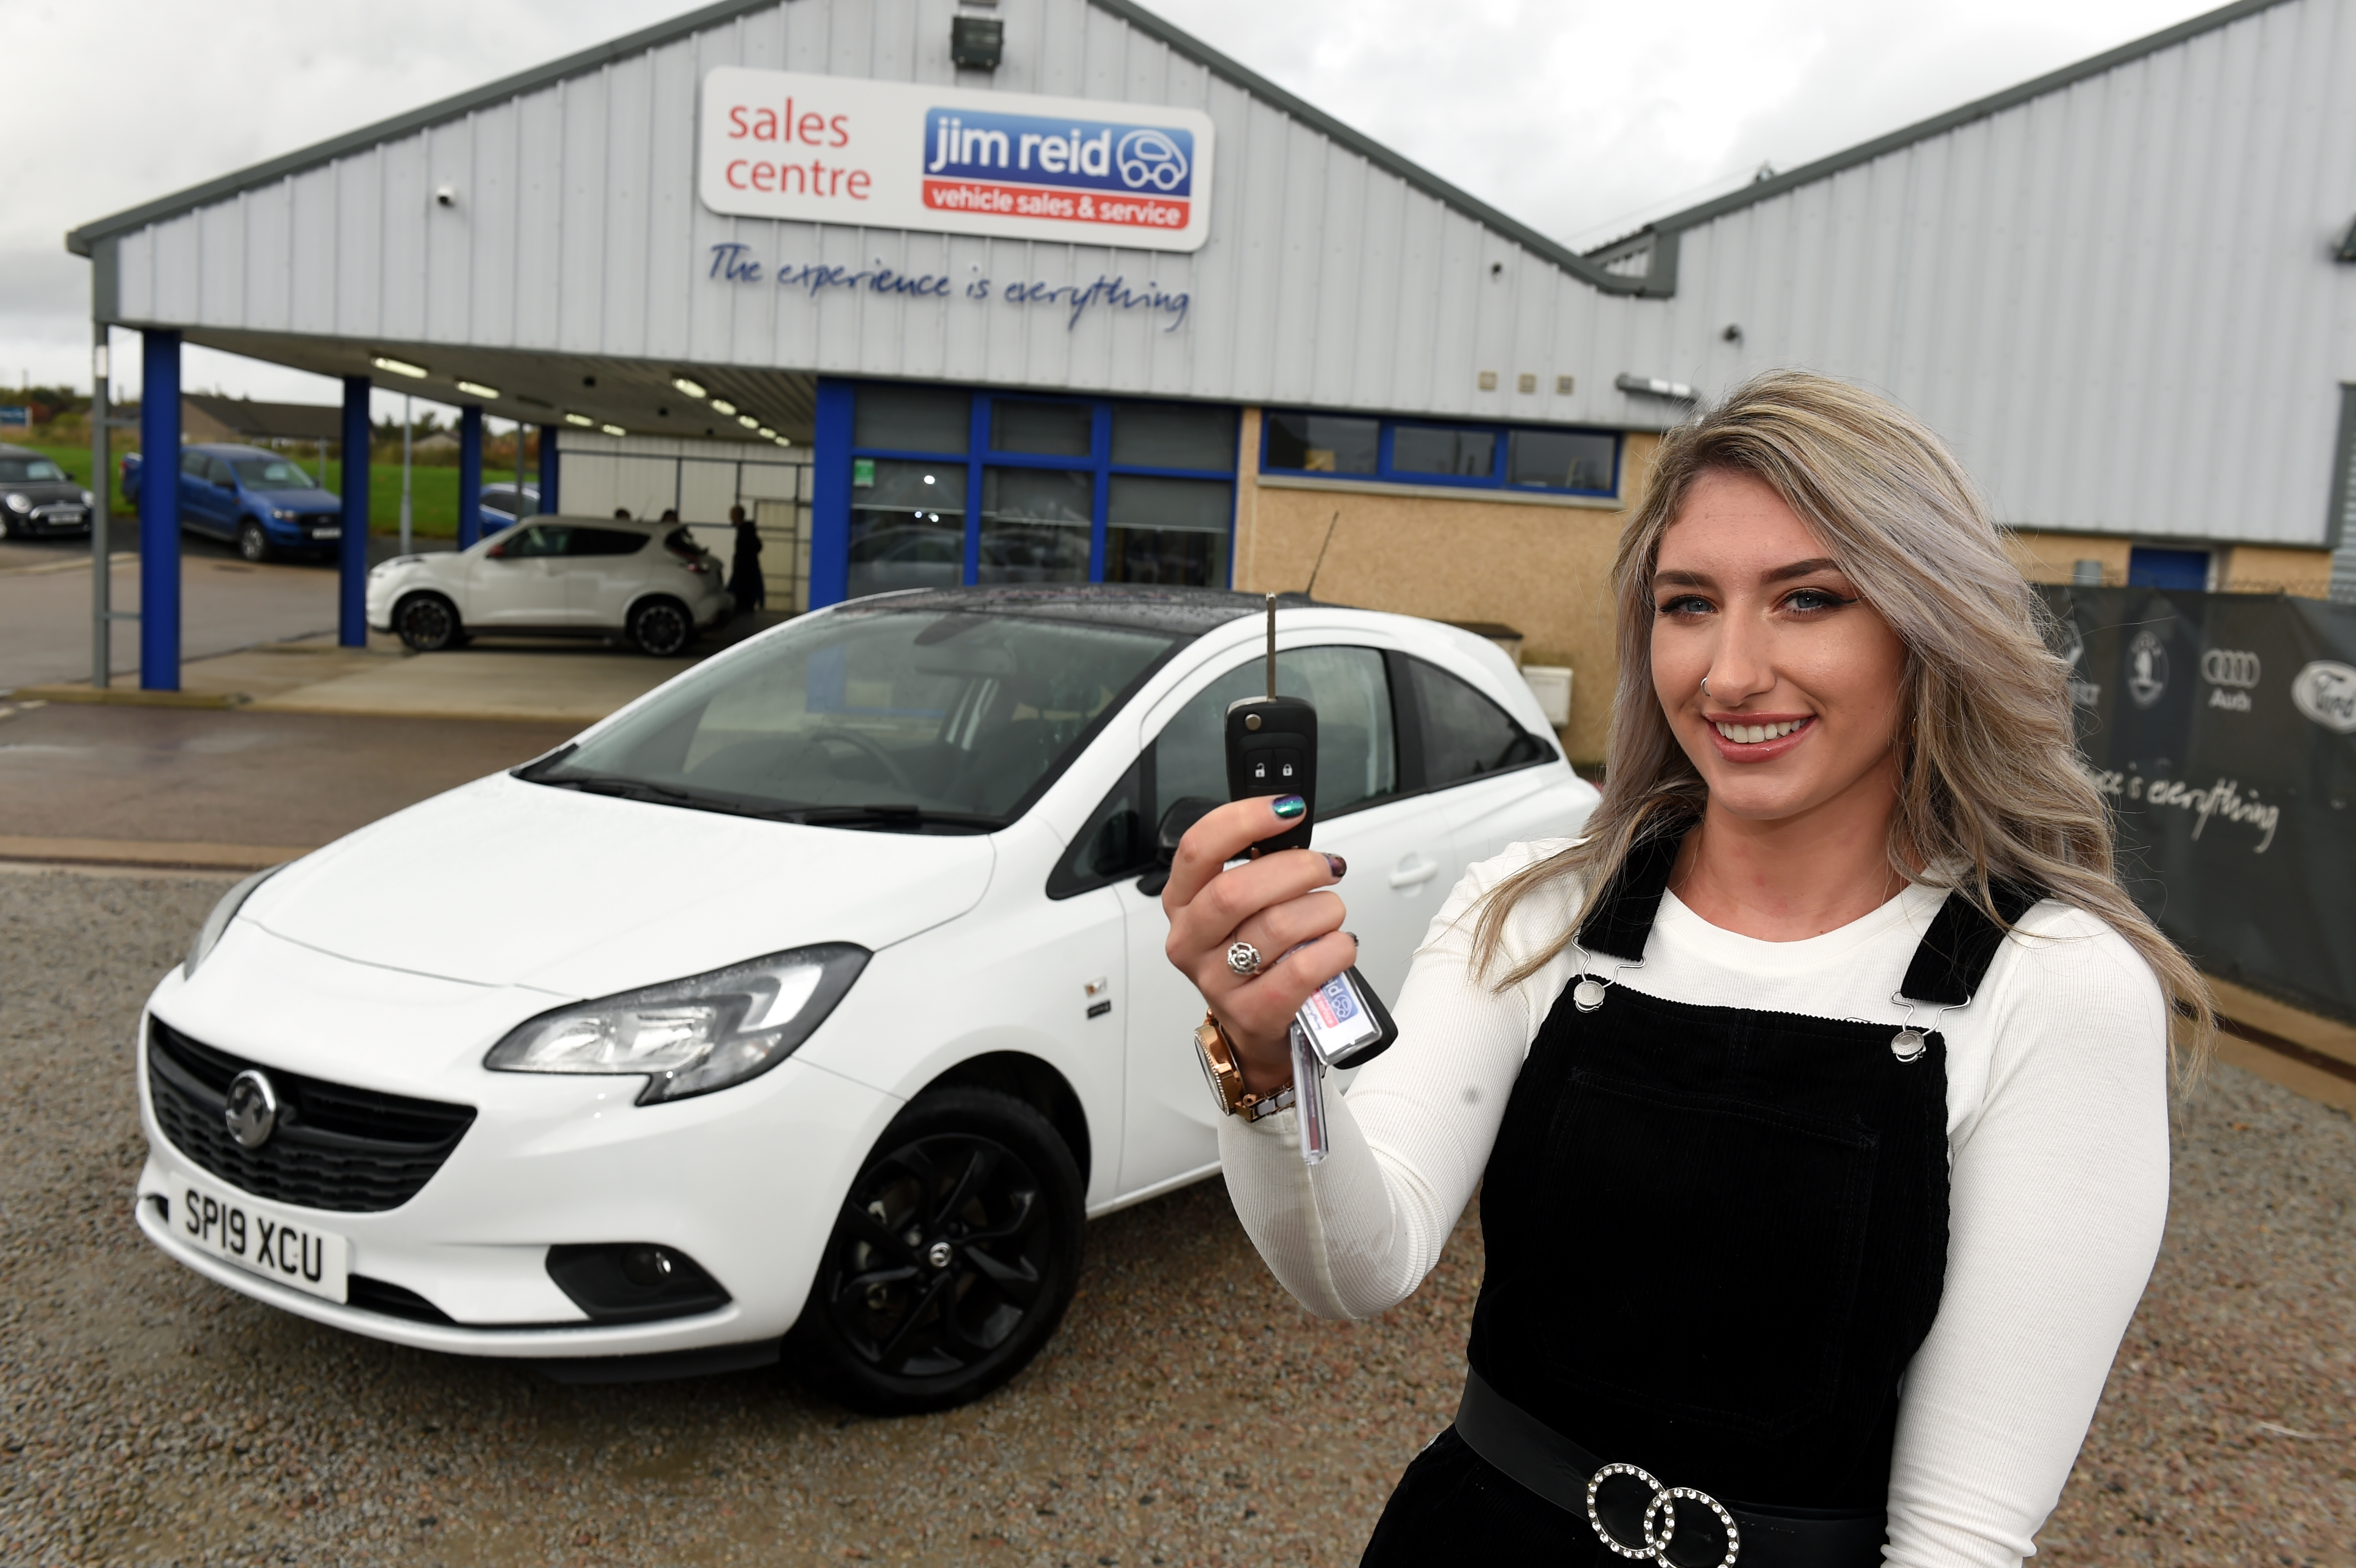 Raffle winner Nicole Anderson collecting her car.